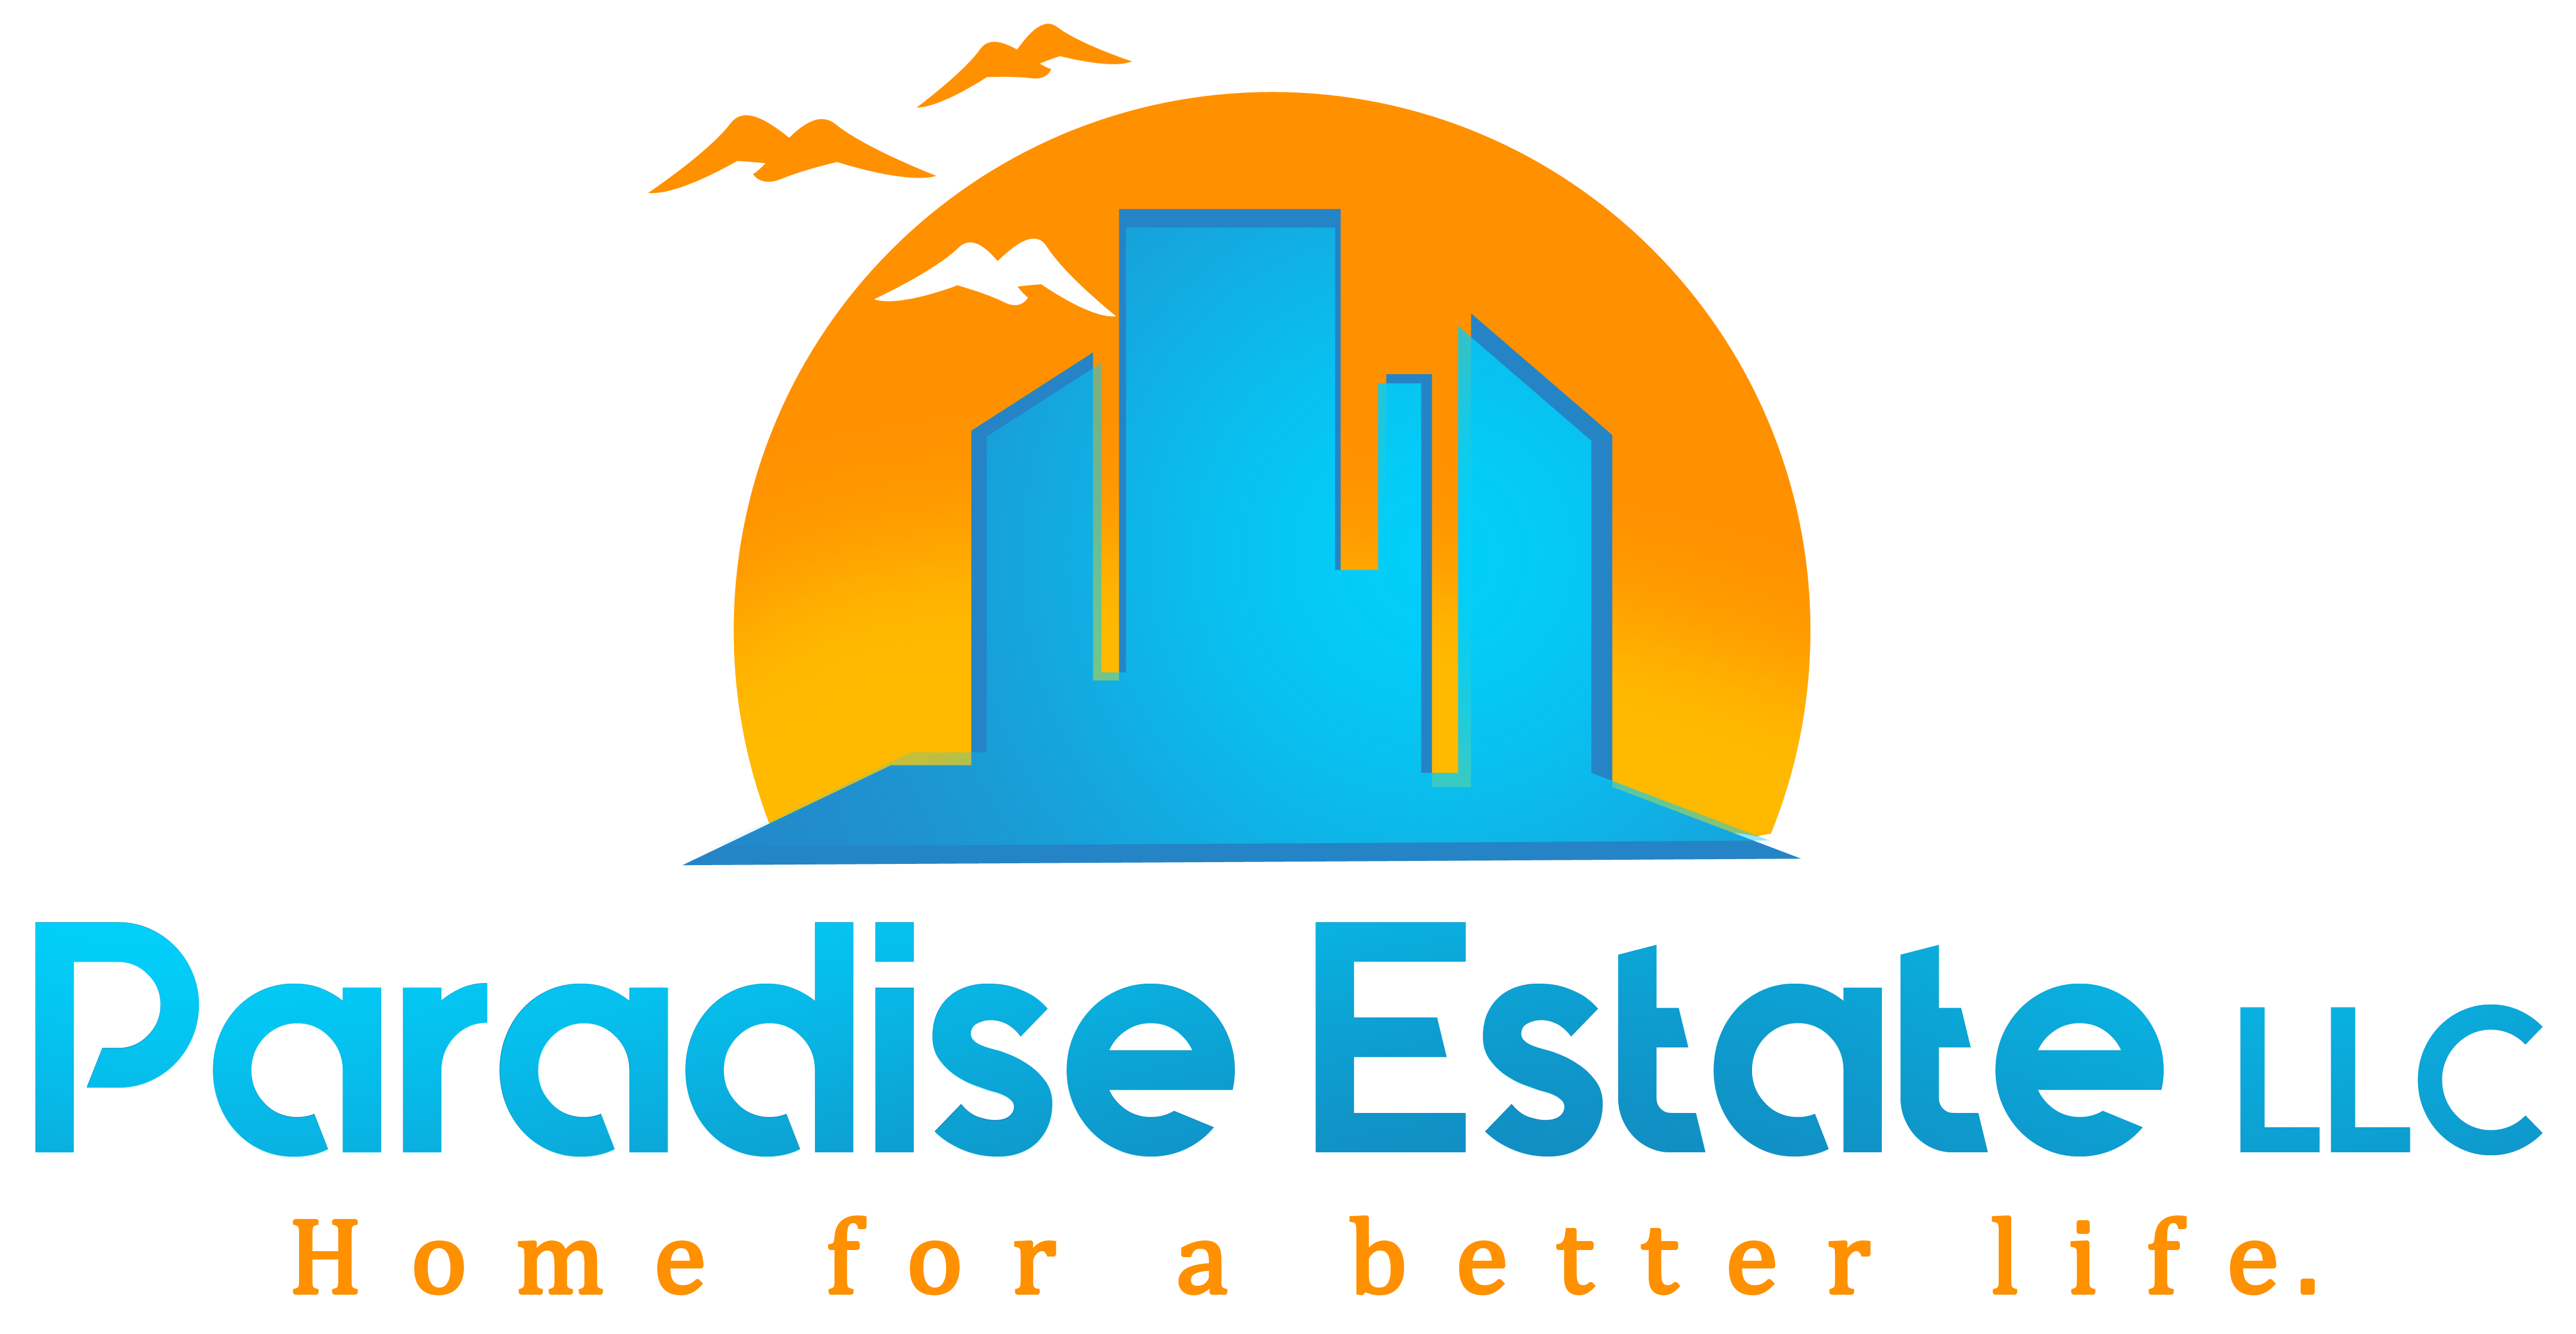 Meet Paradise Estate, A Real Estate Company Promoting People Over Profits